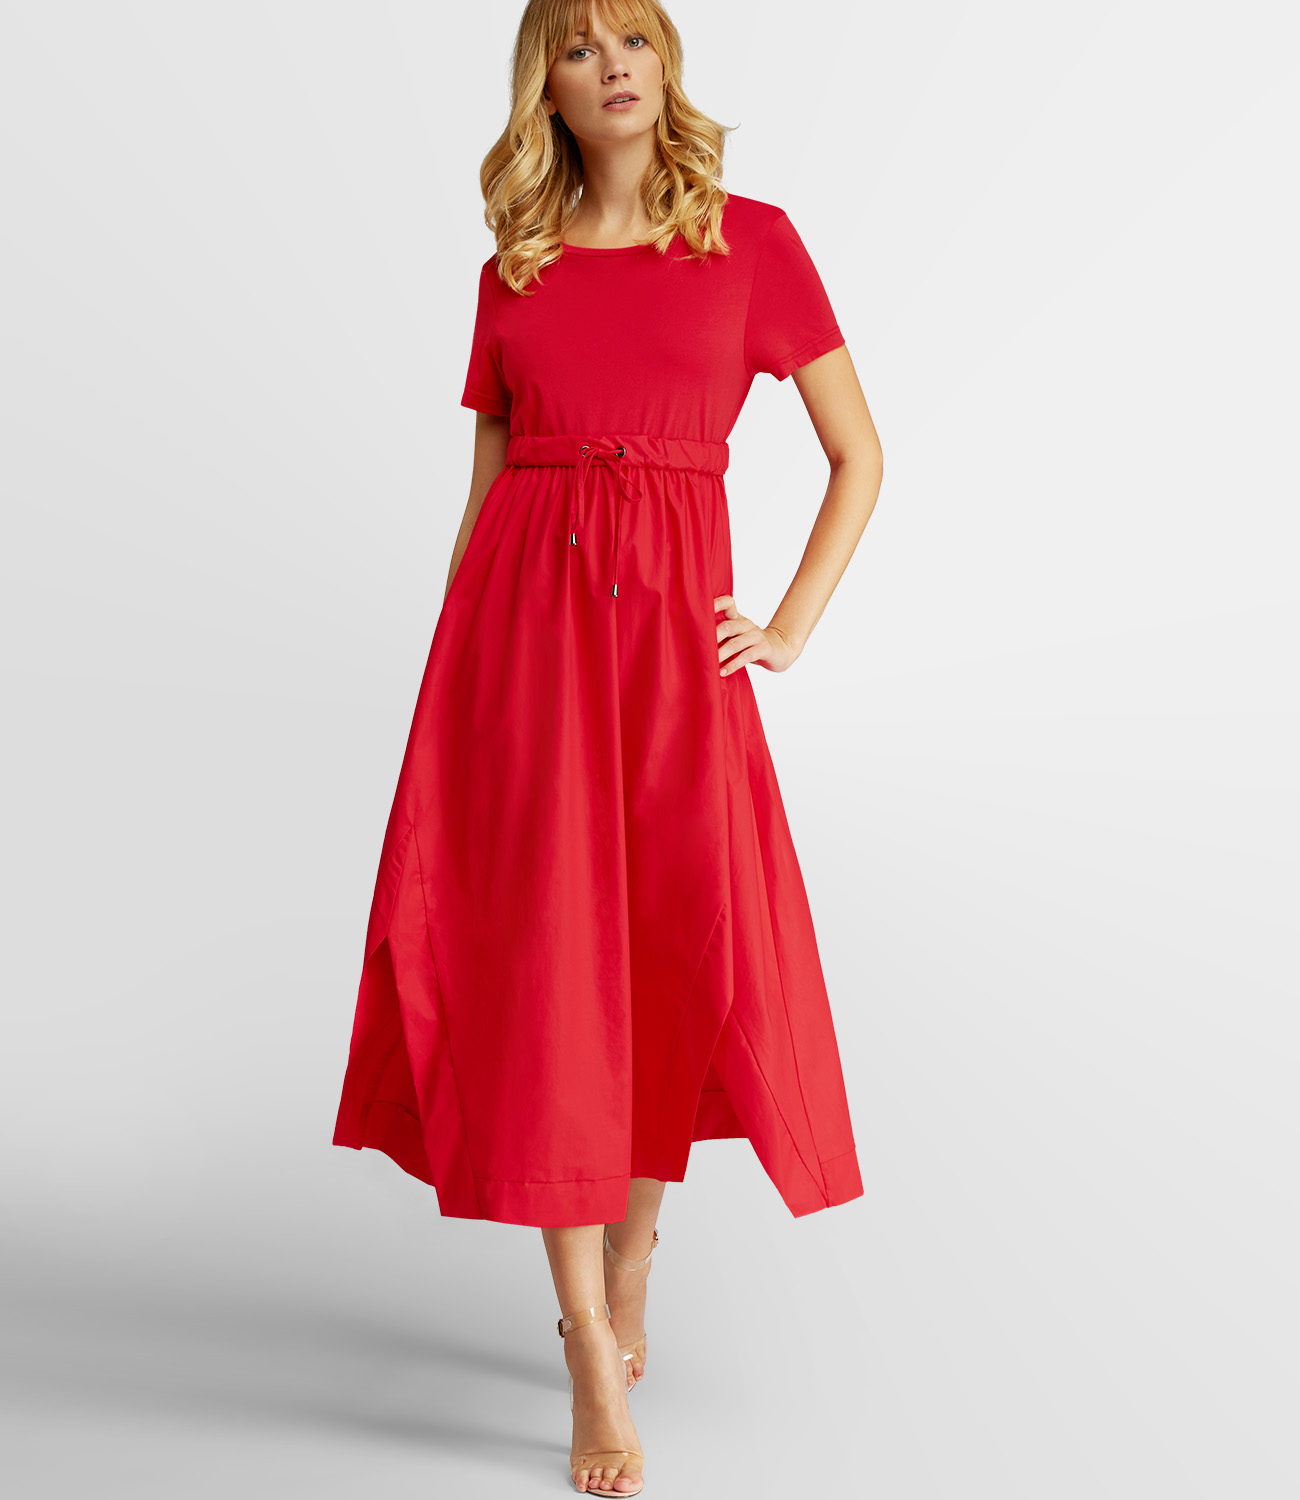 Langes rotes Sommerkleid | APART Fashion